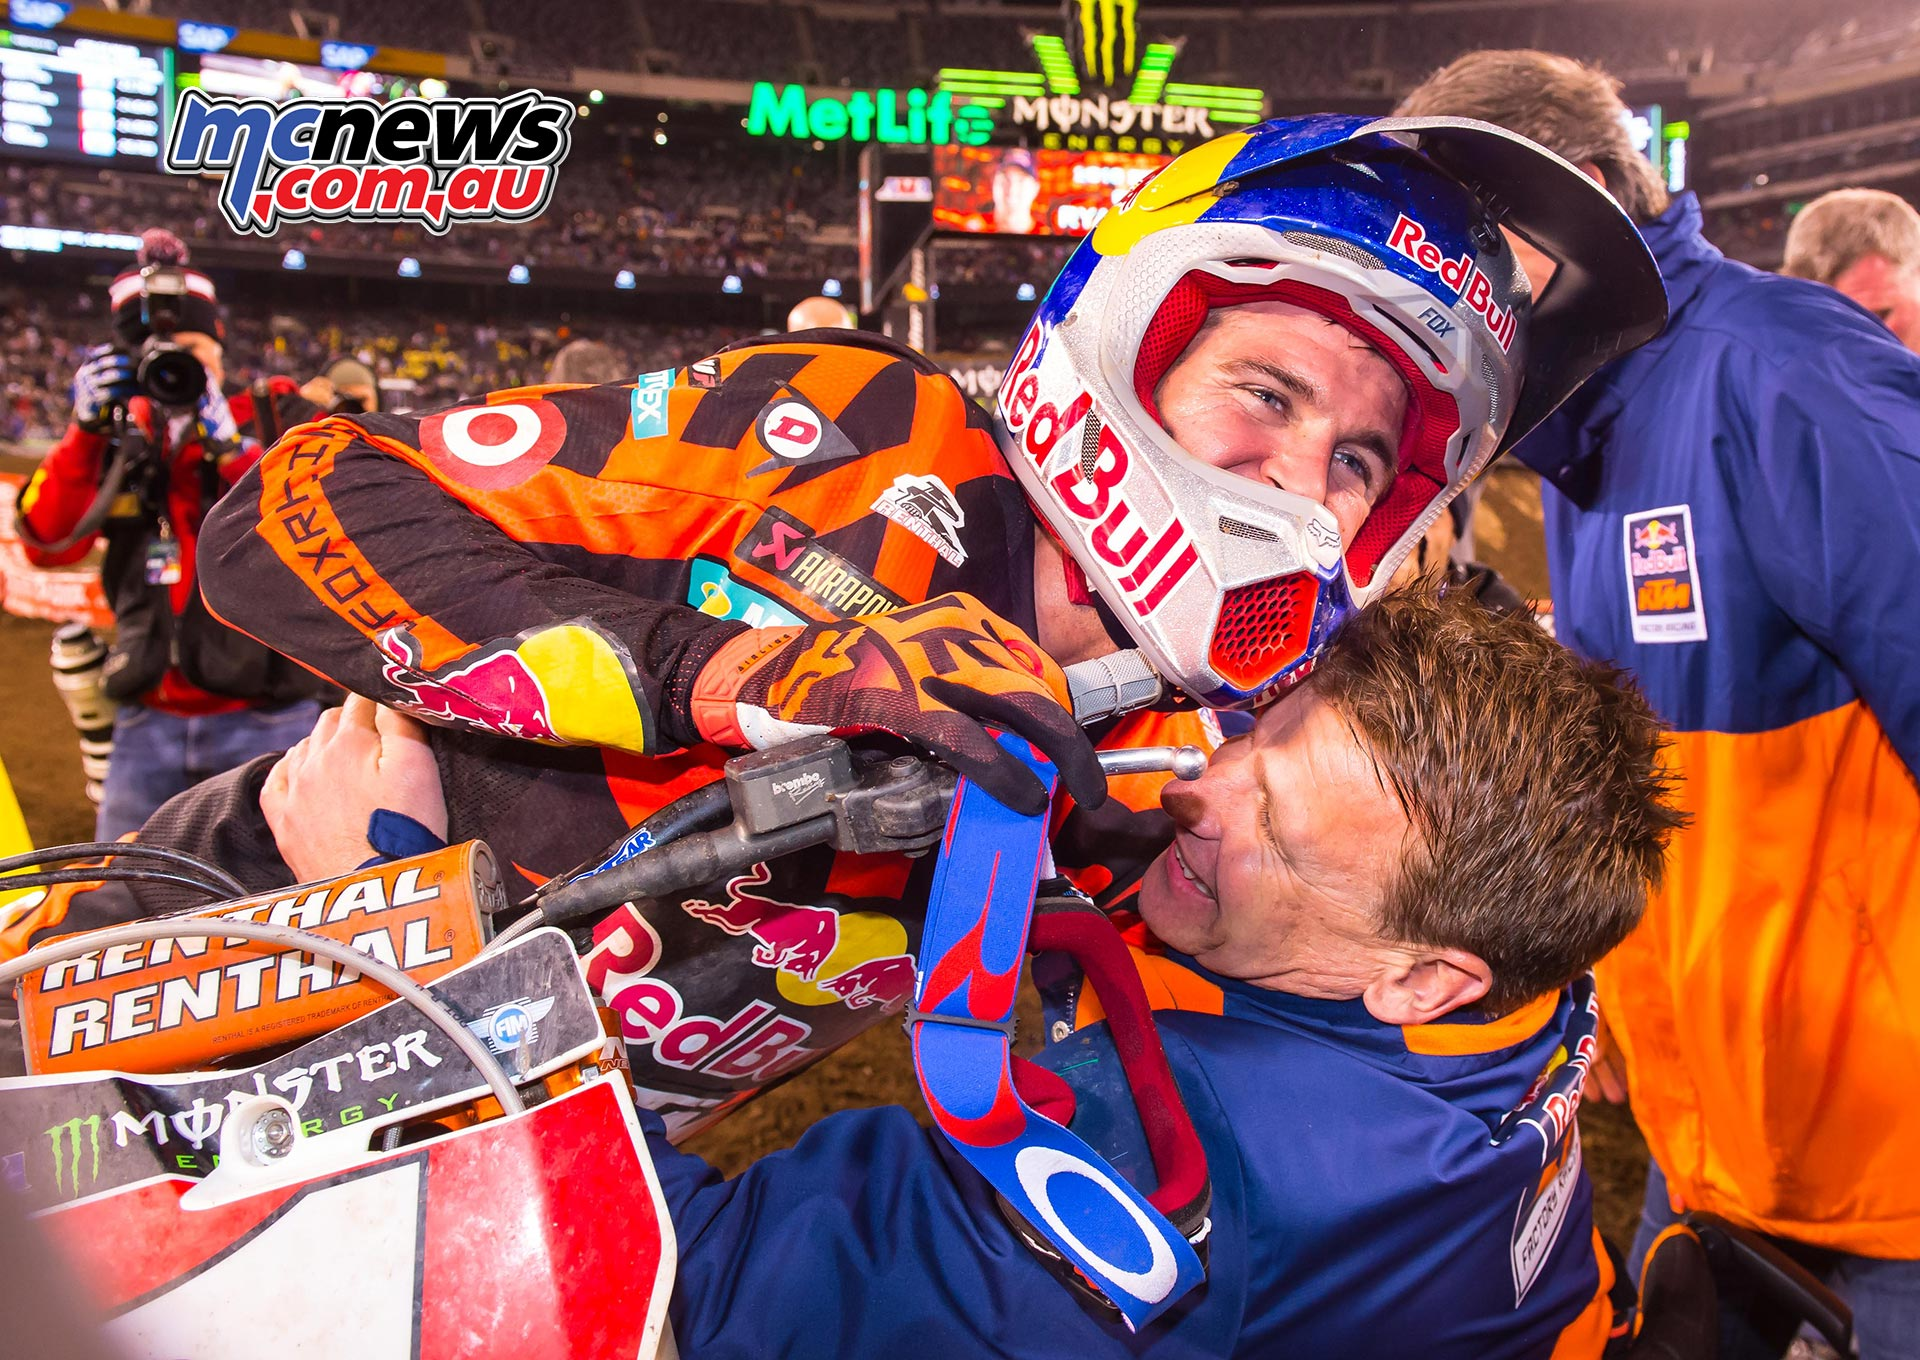 Ryan Dungey & Pit Beirer KTM 450 SX-F Podium East Rutherford 2016